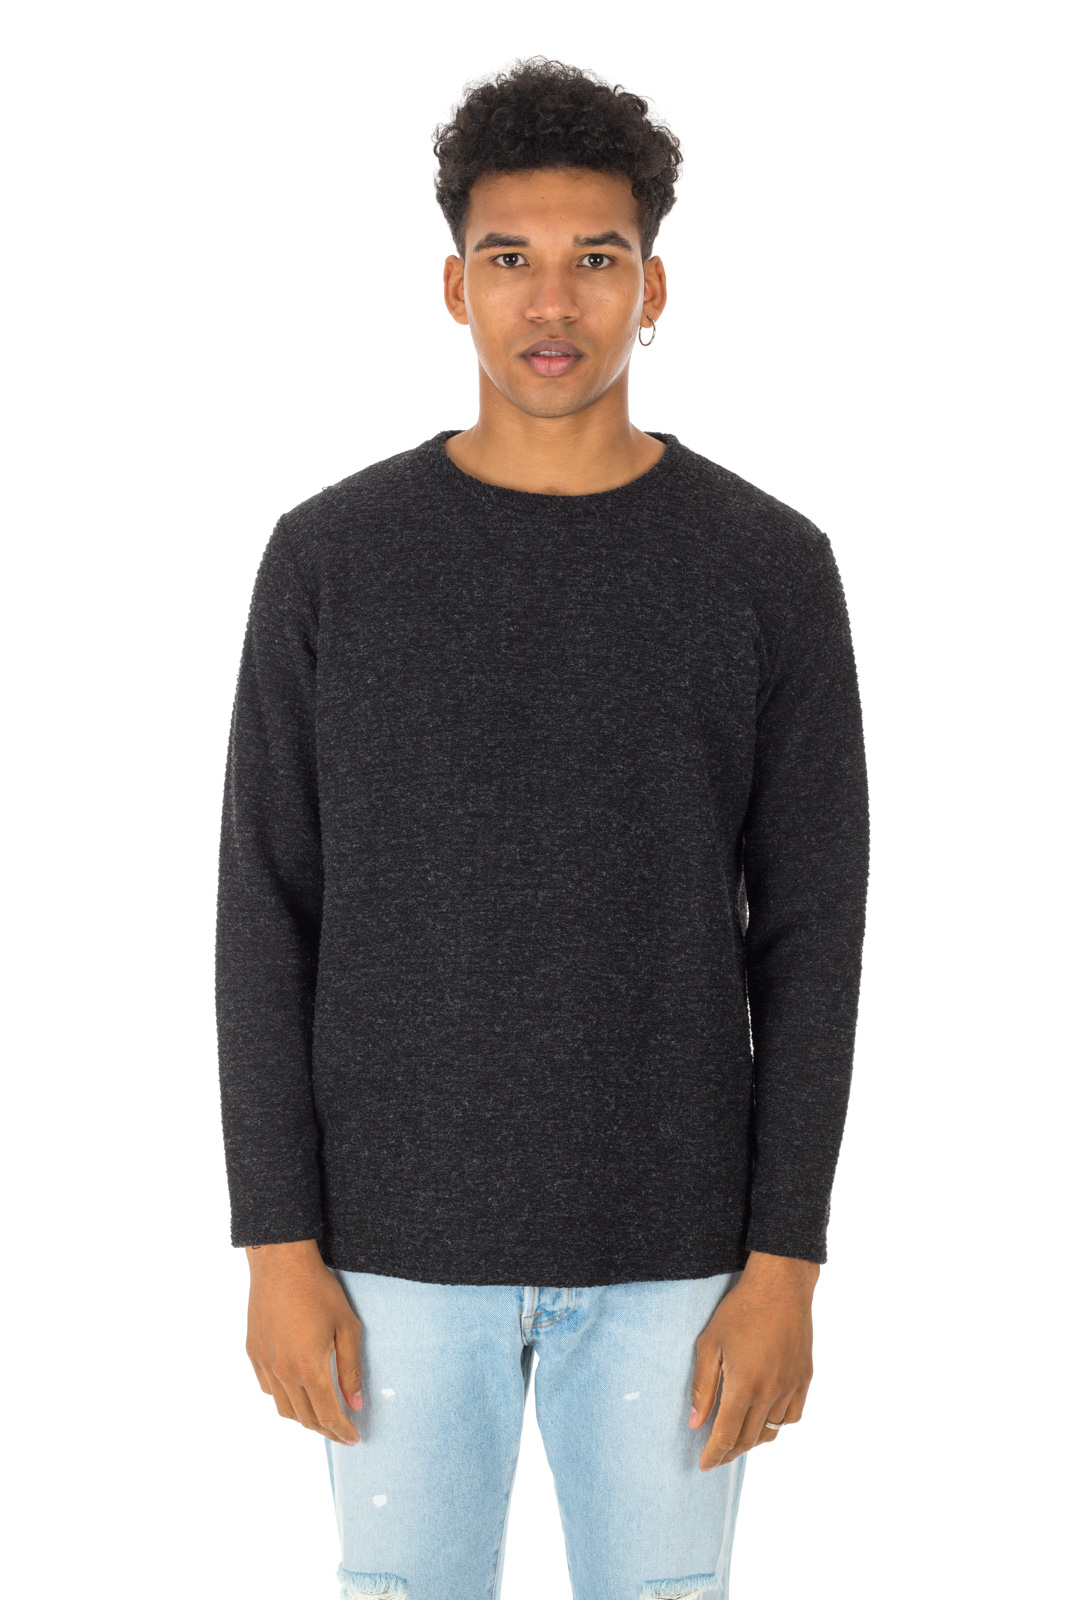 Berna - Basic Anthracite Sweater